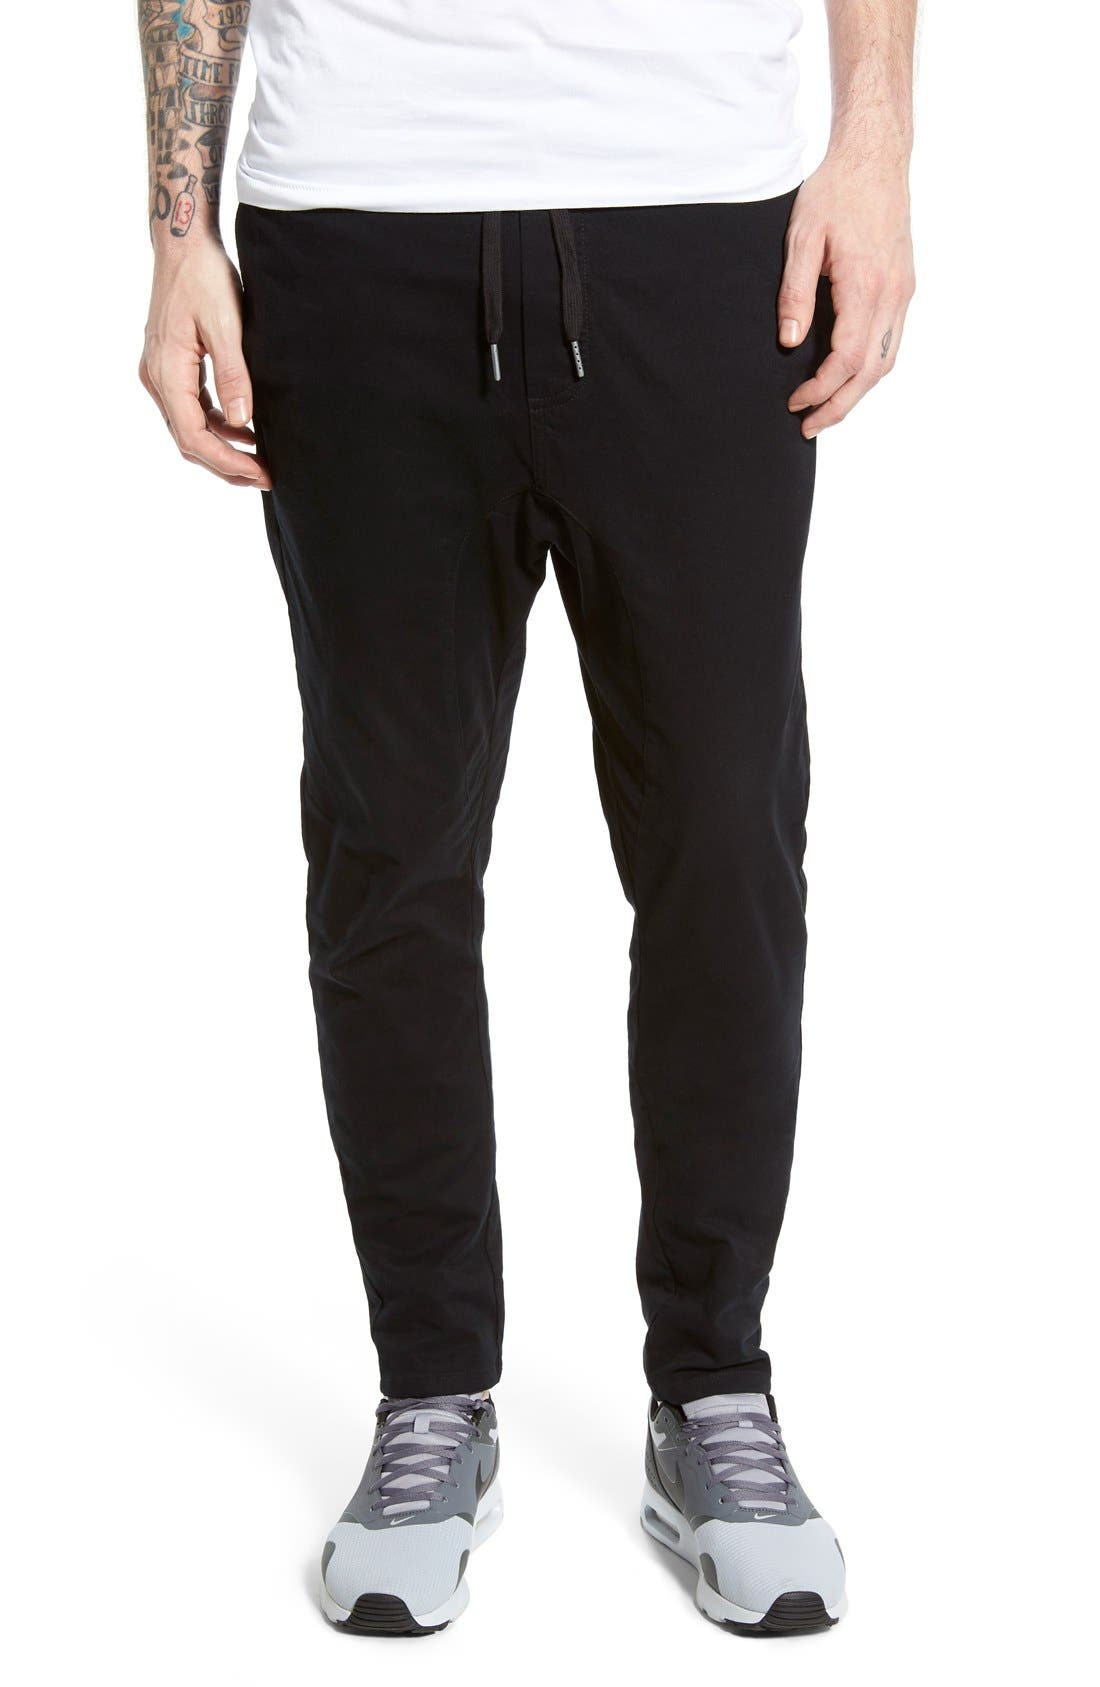 Salerno Stretch Woven Jogger Pants,                         Main,                         color,